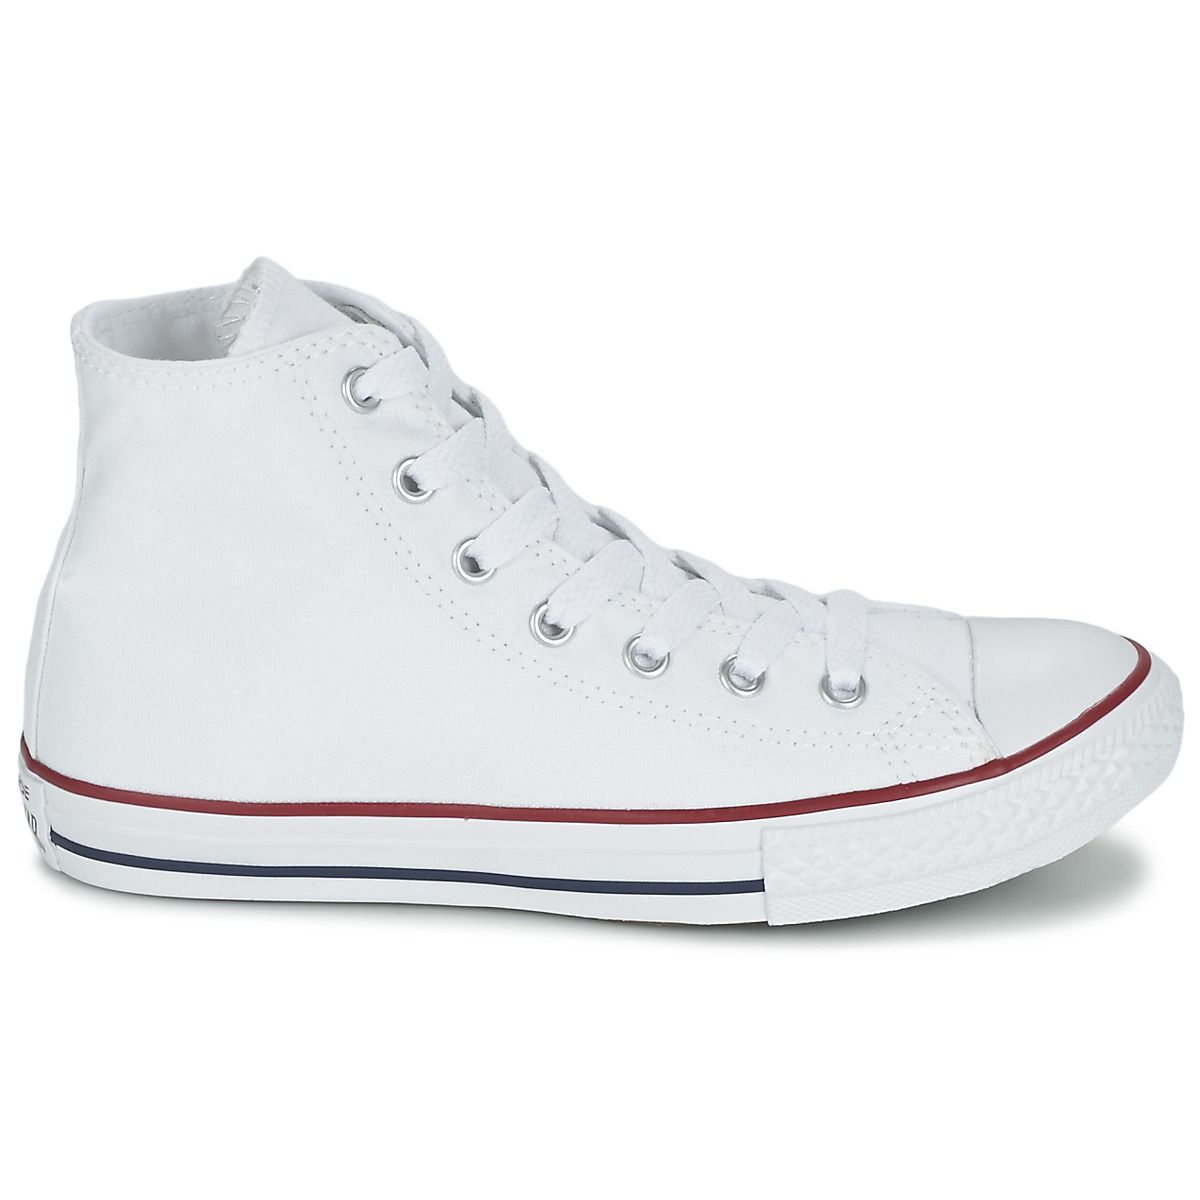 2converse all star bordeaux bambino